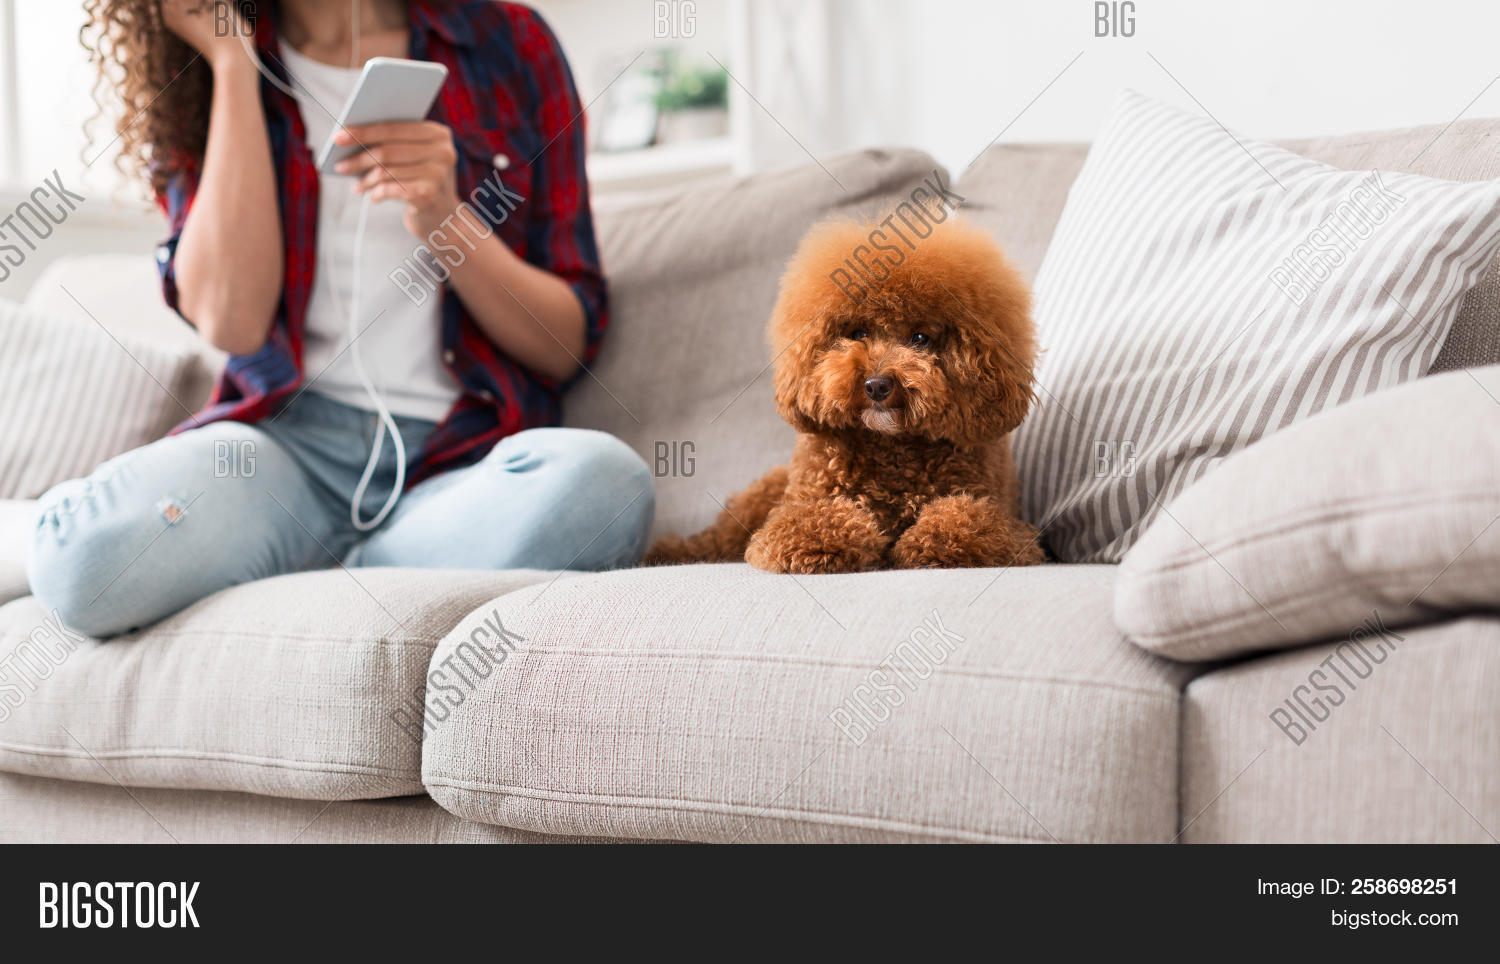 adorable,alone,animal,background,beautiful,brown,busy,cheerful,comfortable,concept,copy,couch,cozy,cute,dog,domestic,female,fluffy,friend,funny,girl,happy,home,indoor,life,little,looking,love,lovely,music,one,owner,pet,poodle,portrait,puppy,rest,sitting,small,smartphone,sofa,space,studio,tiny,toy,toy-poodle,white,woman,young